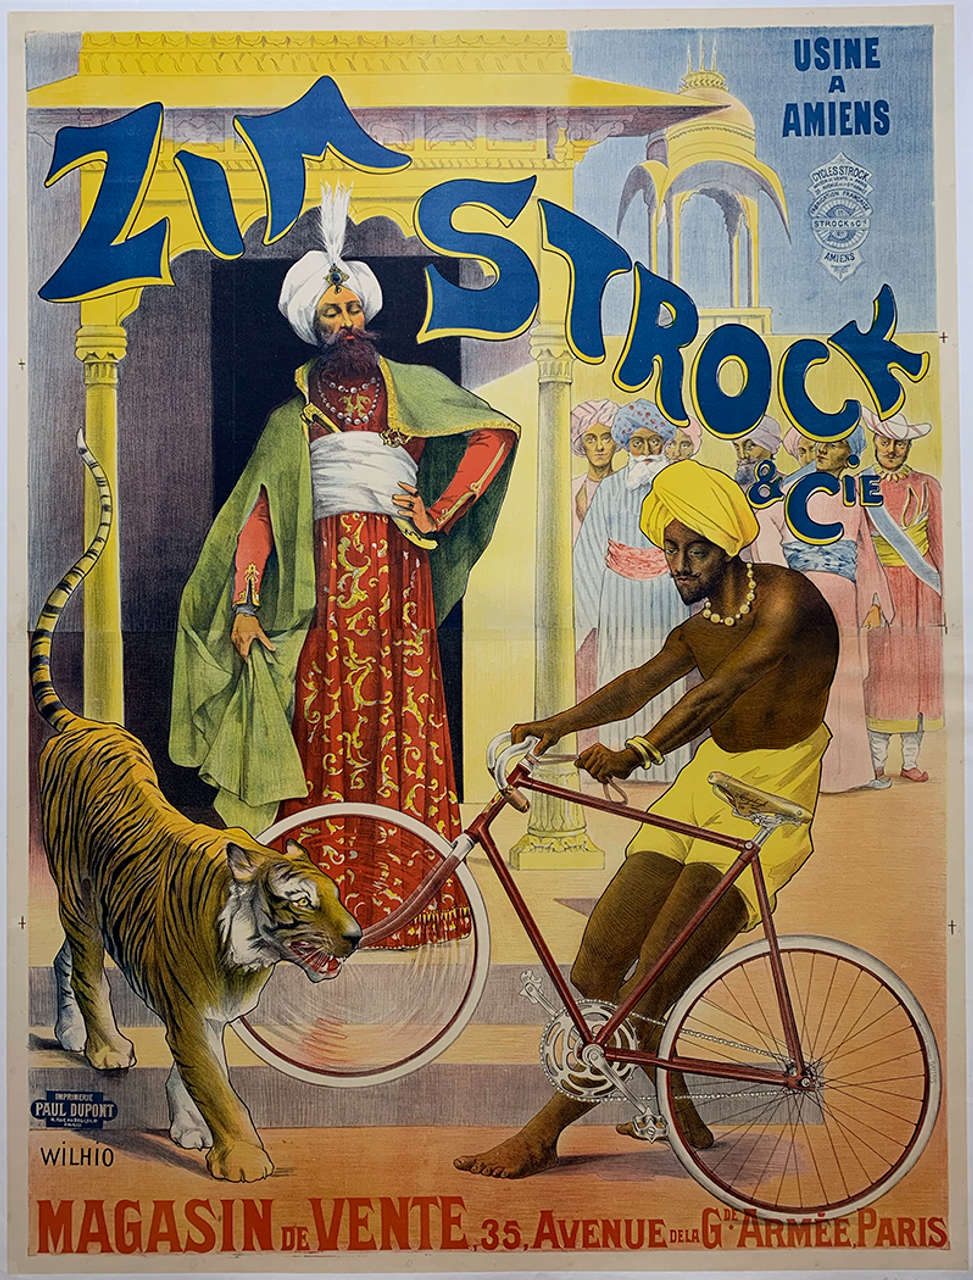 Zim Strock Original Vintage  Bicycle Poster by Wilhio